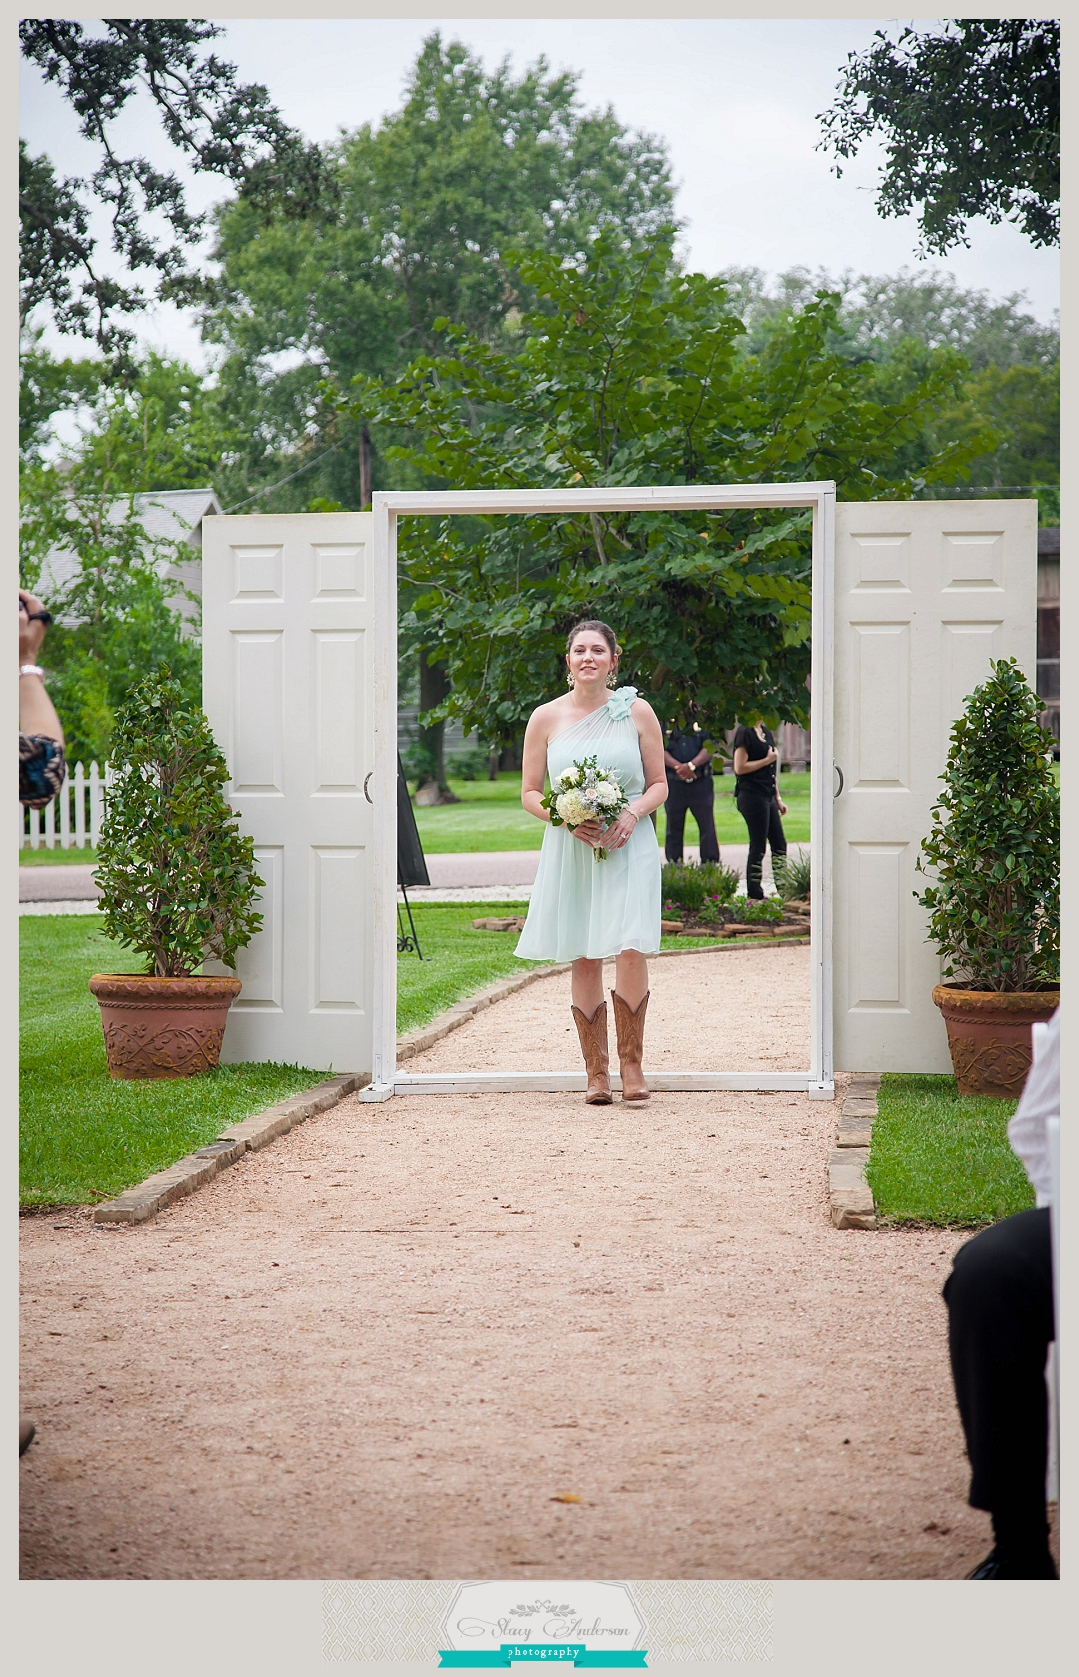 Butler's Courtyard Wedding Photographer (78)